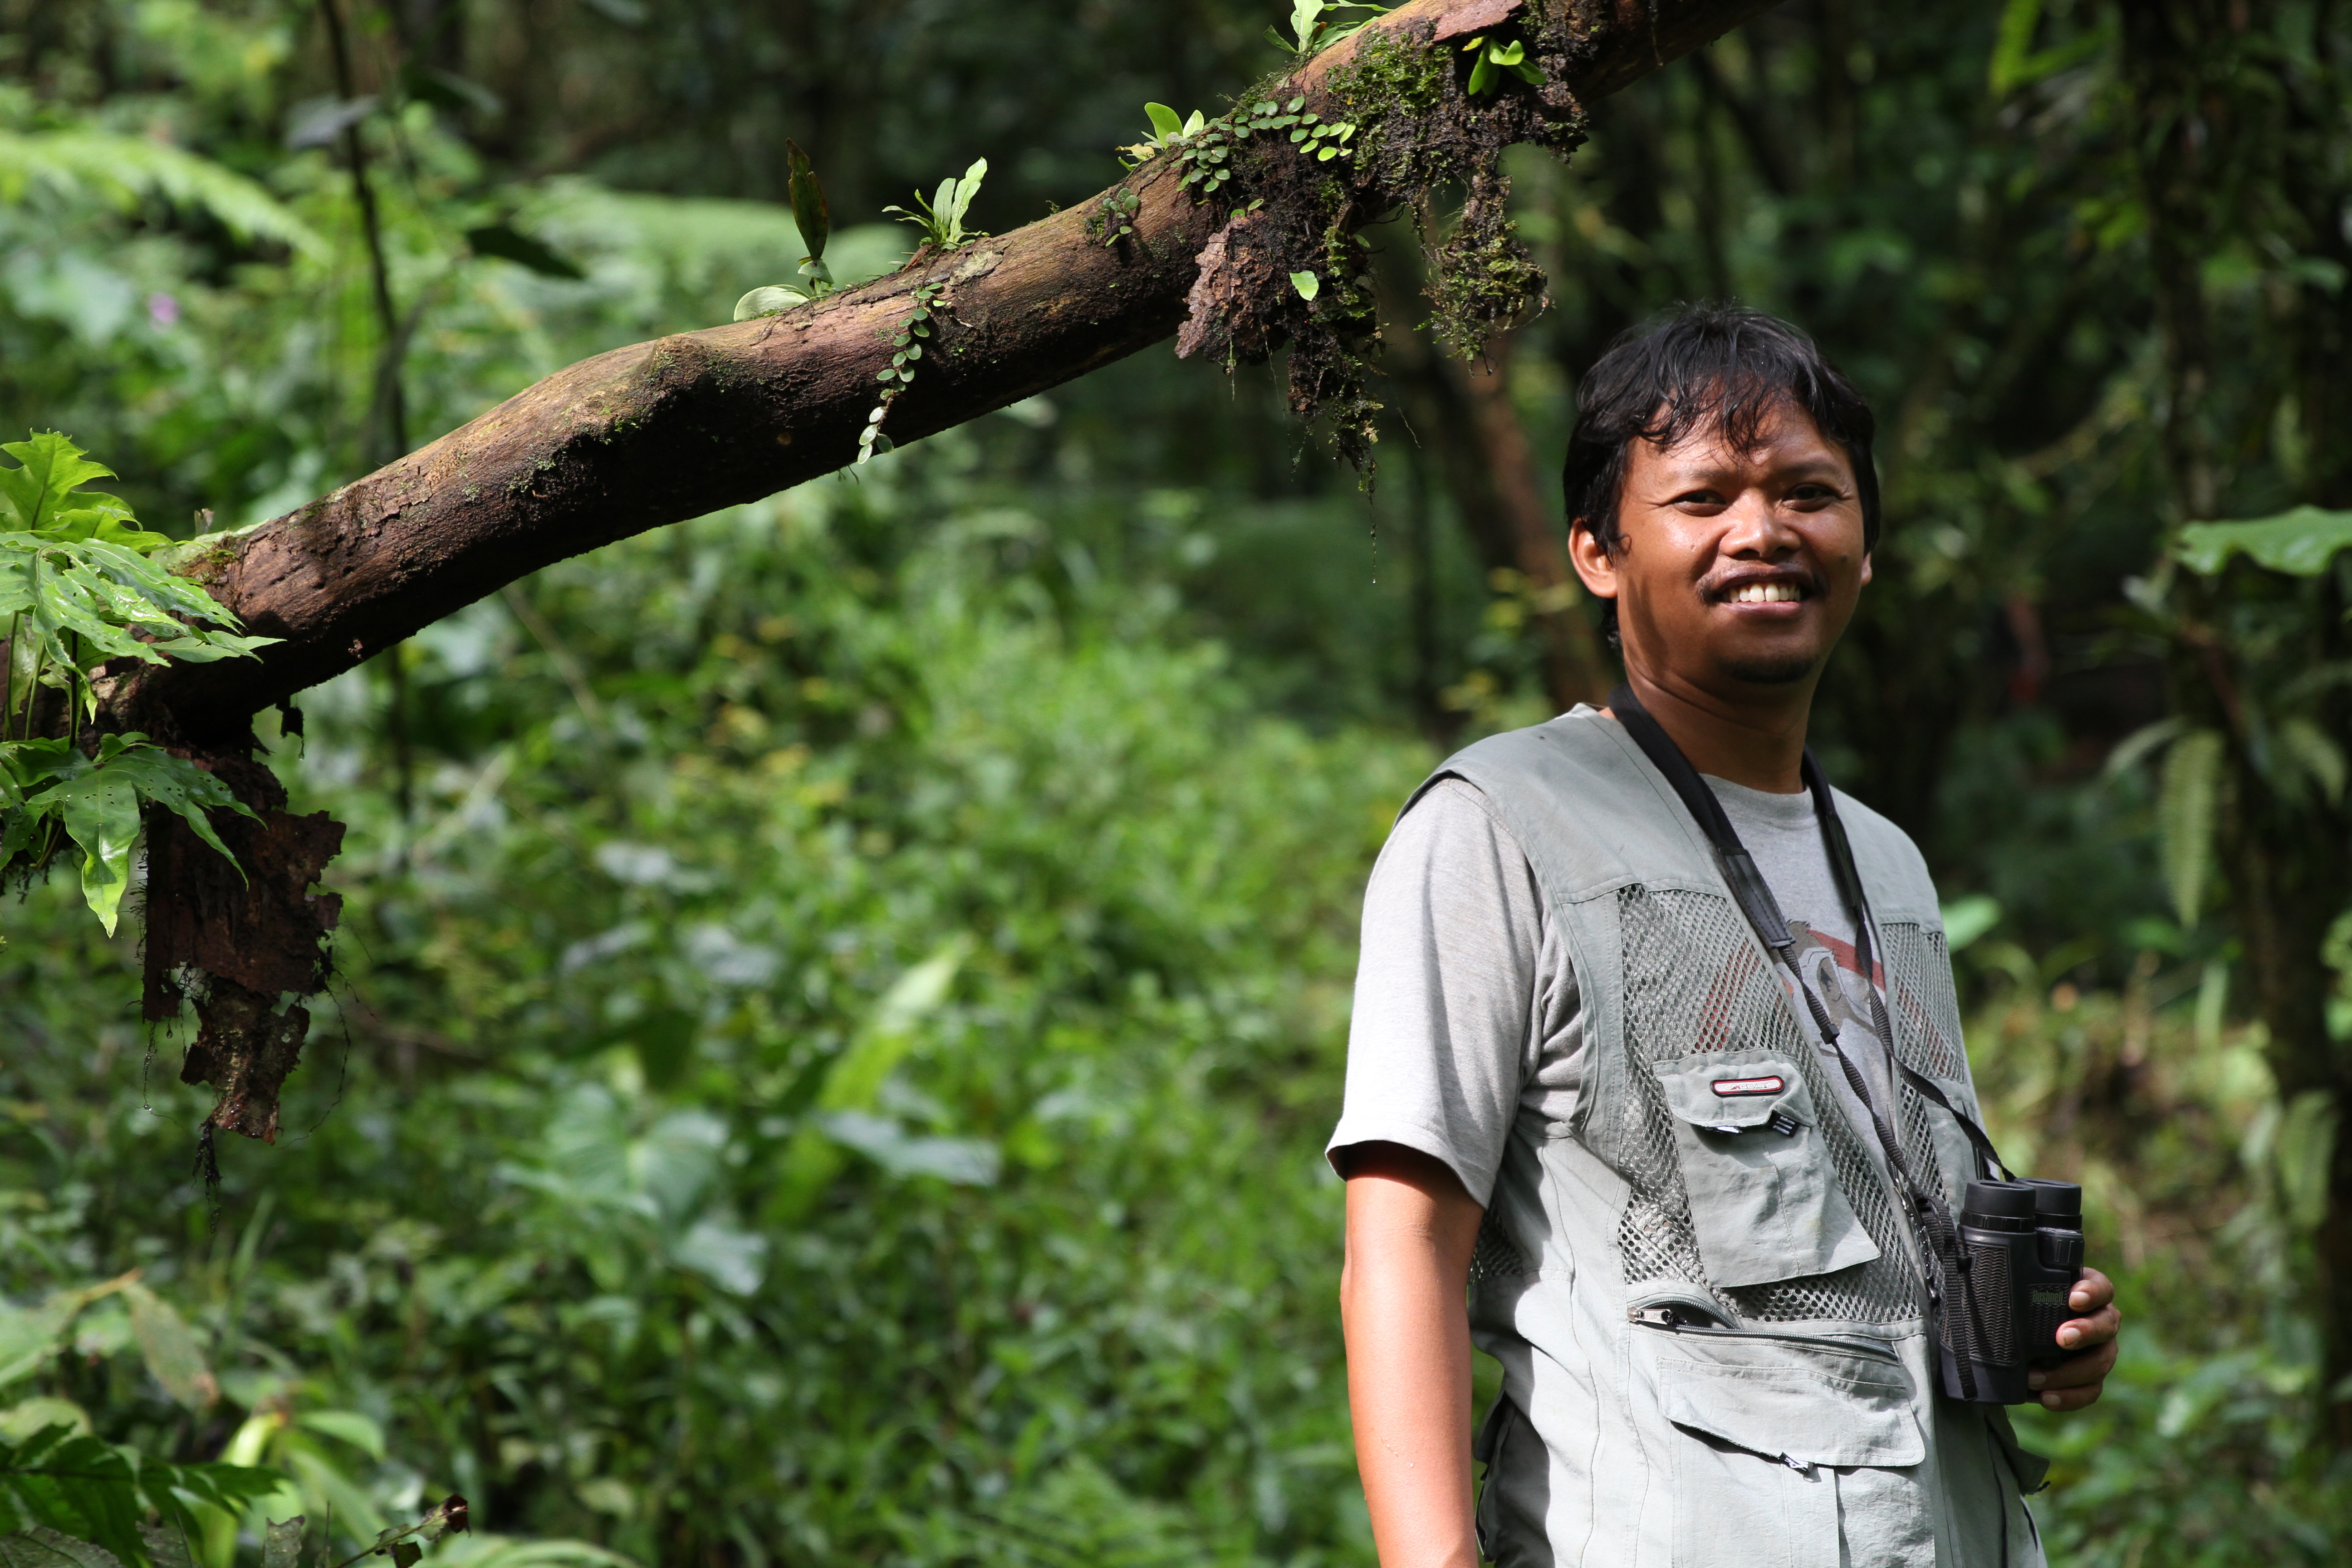 Wawan guiding us through the forest!